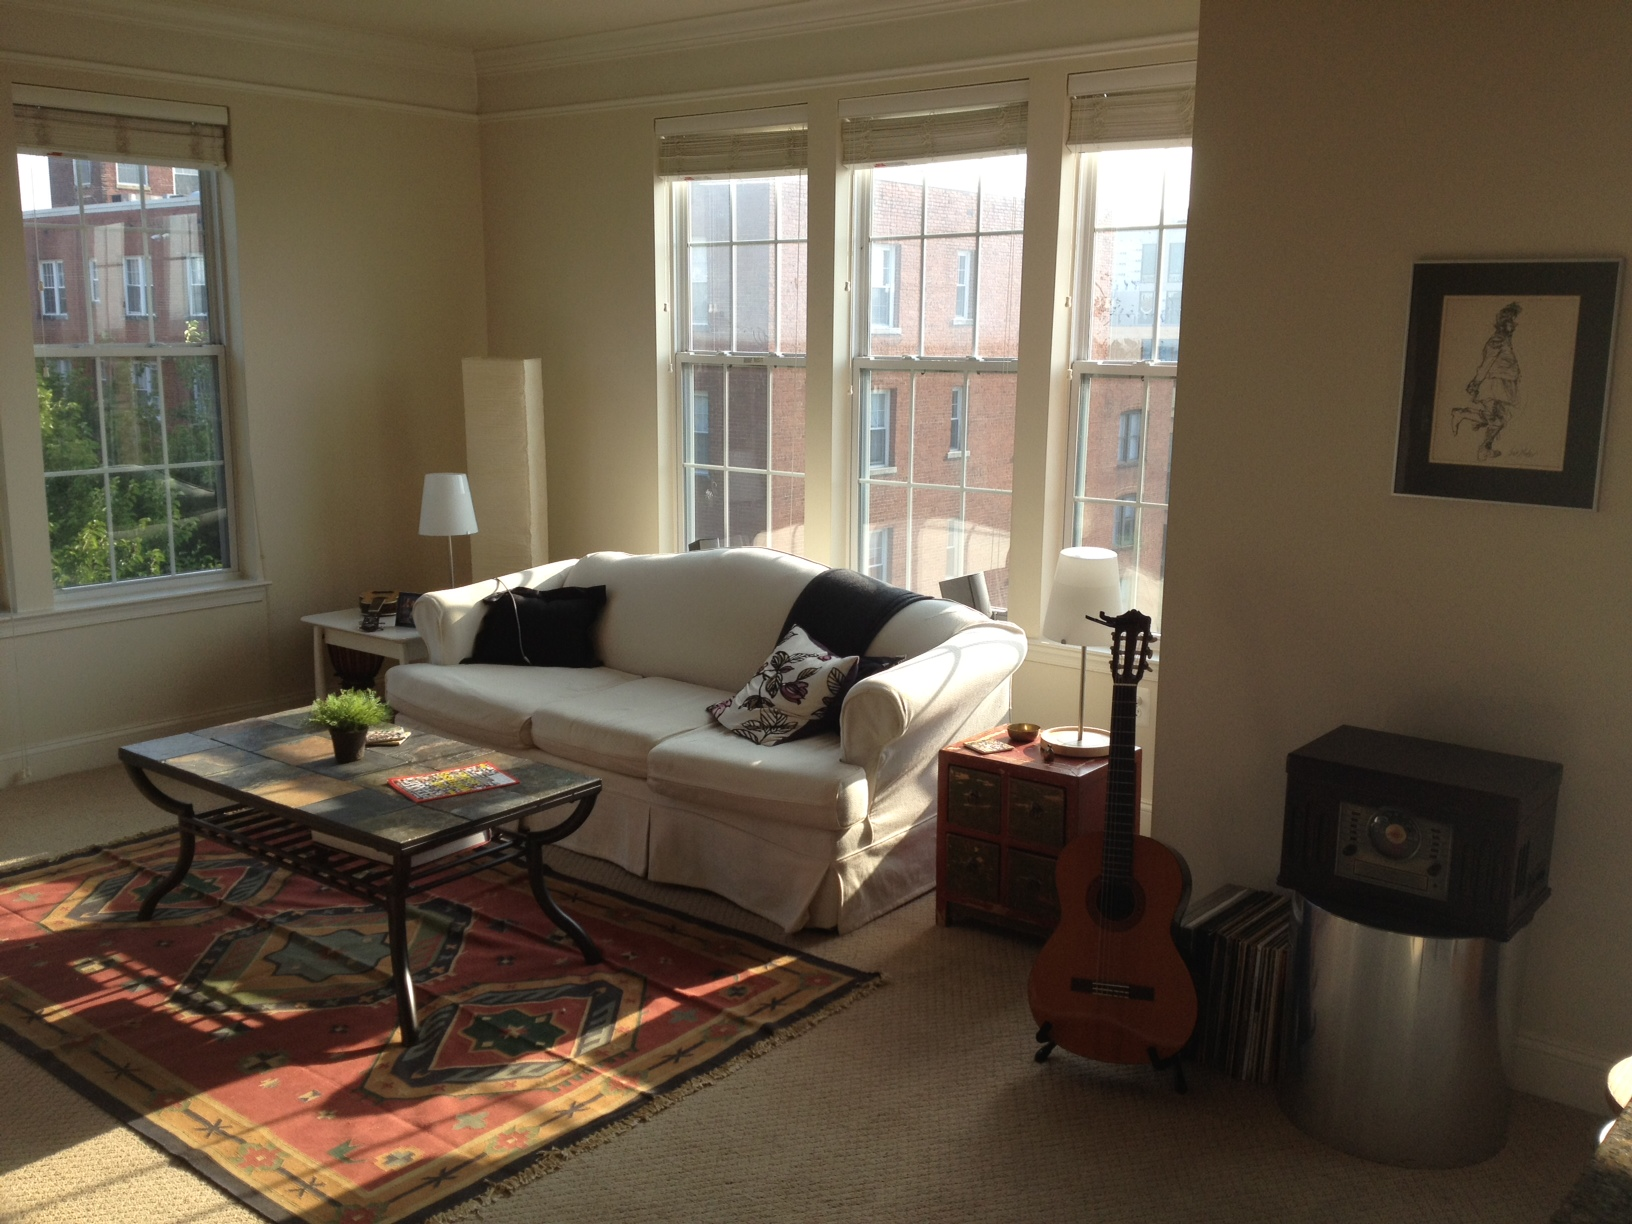 First Apartment: The Reprisal of the Collegiate \